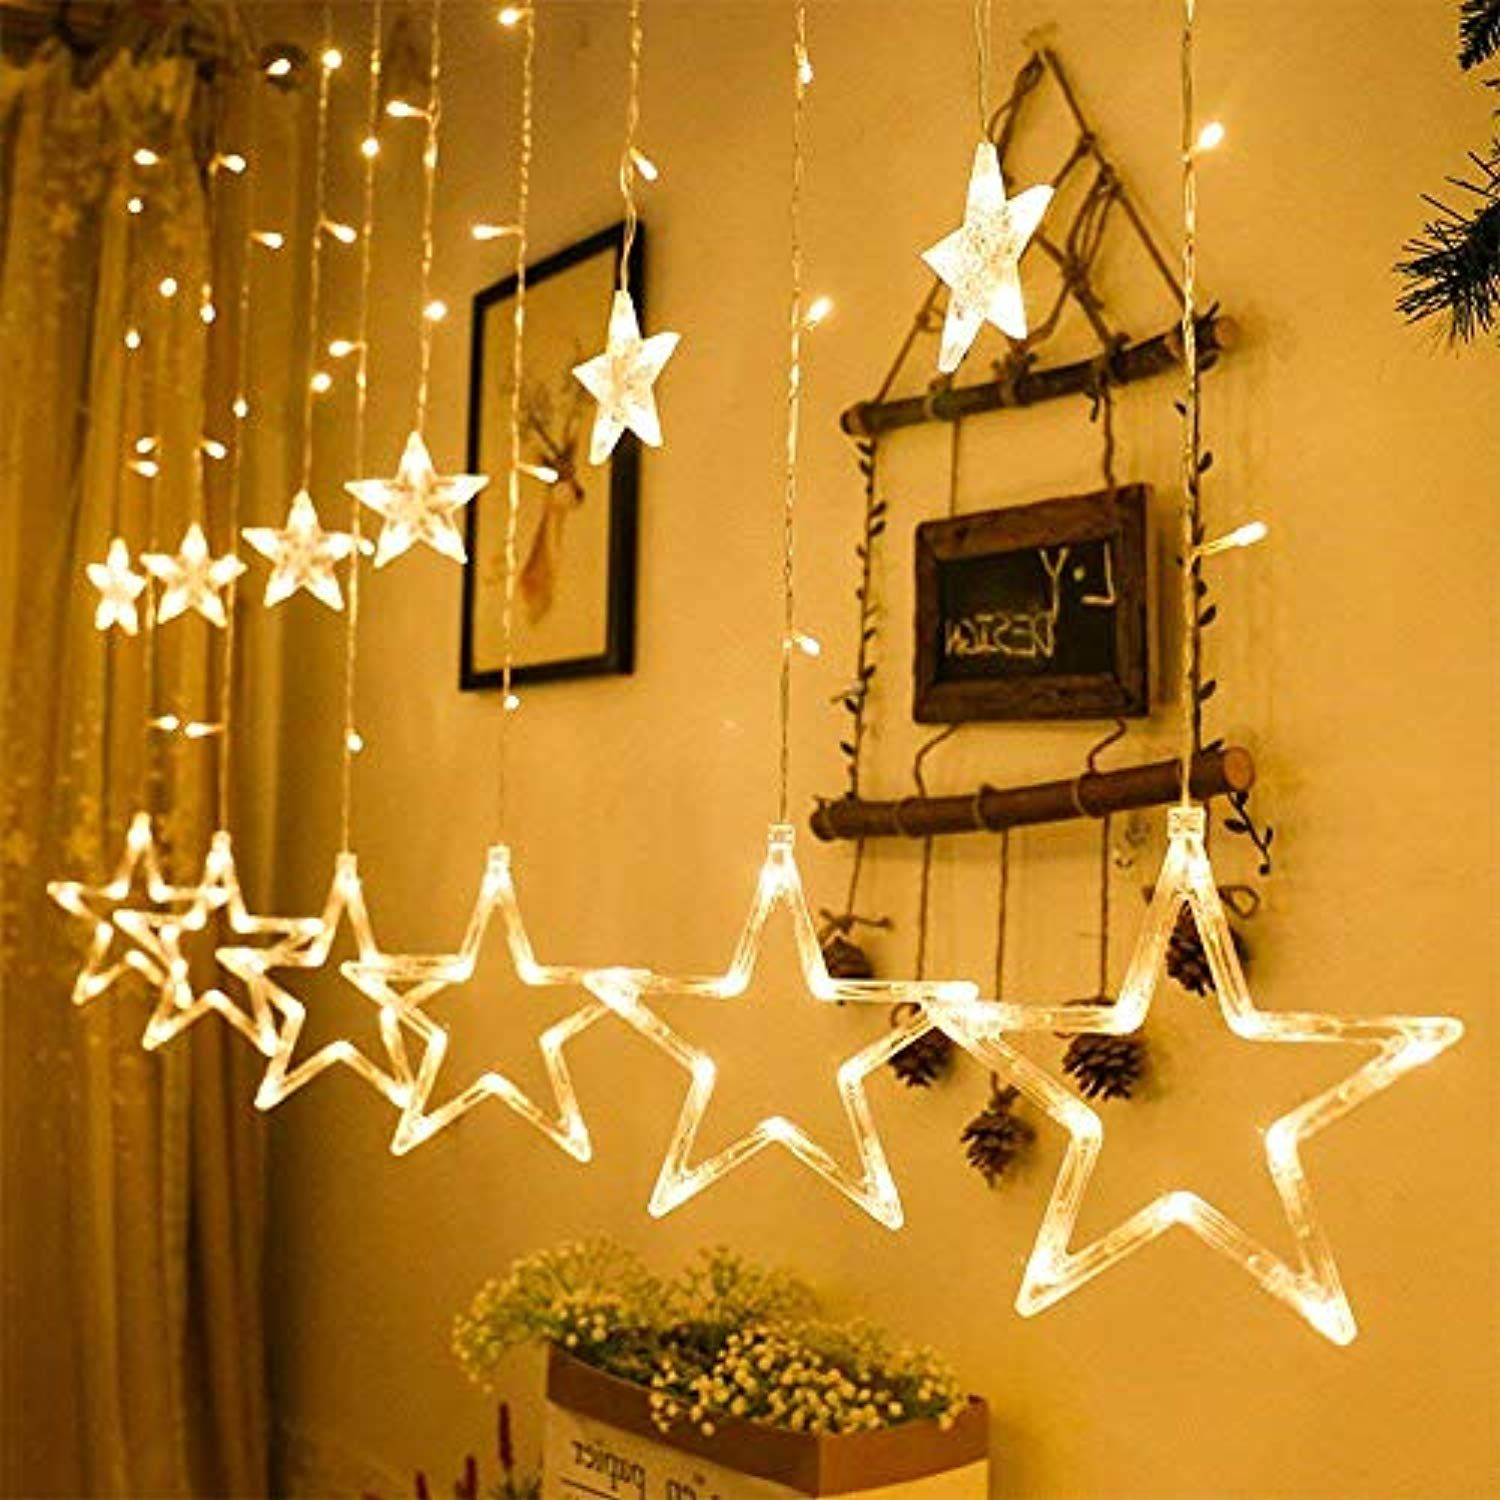 Christmas Home Led Stars Copper Wire Lights Wreaths Twinkle Lights Wedding Decor